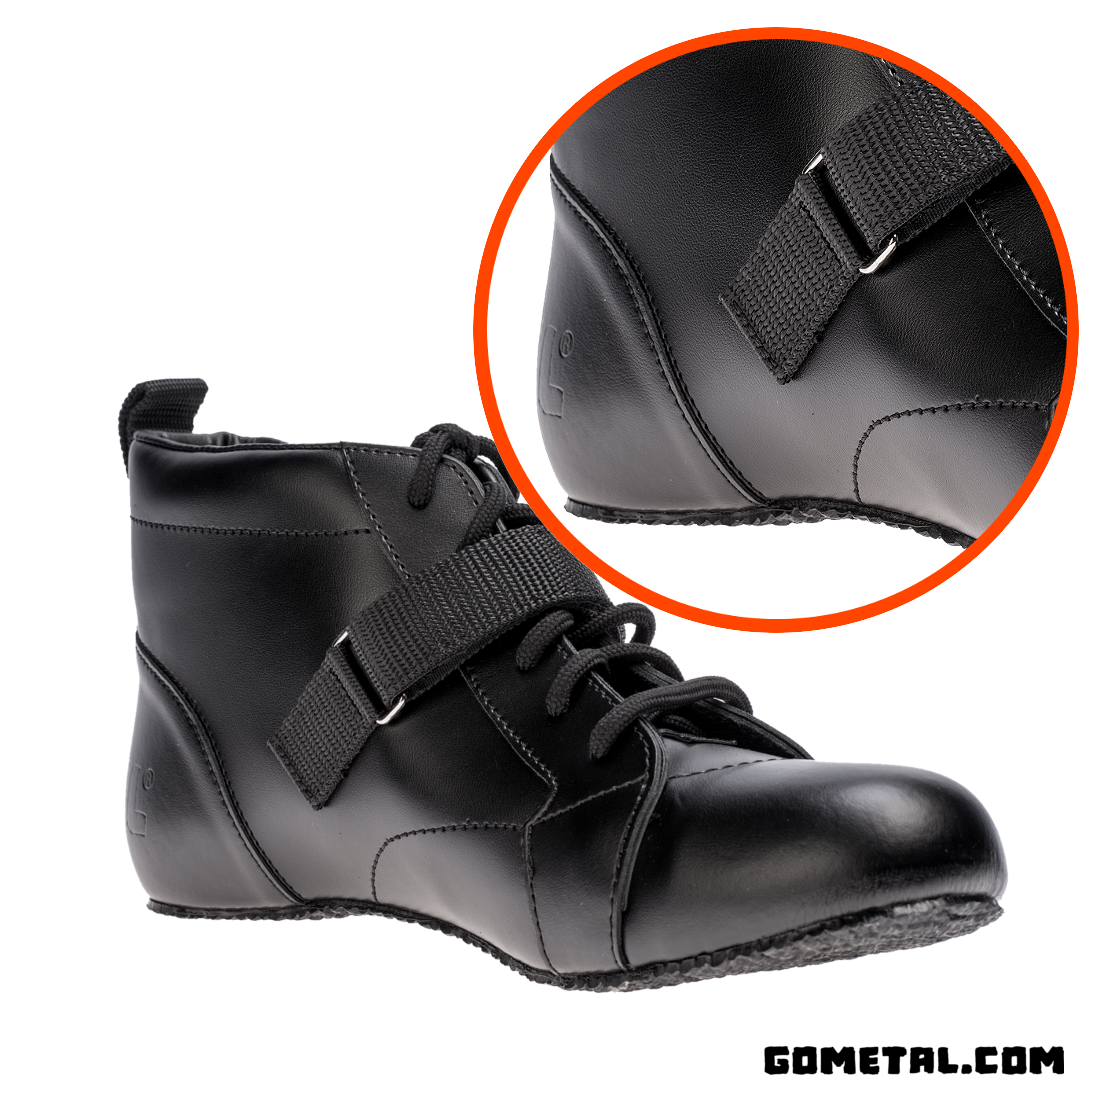 245479f1ea5 METAL Powerlifting Shoes (IPF approved) - GOMETAL.COM